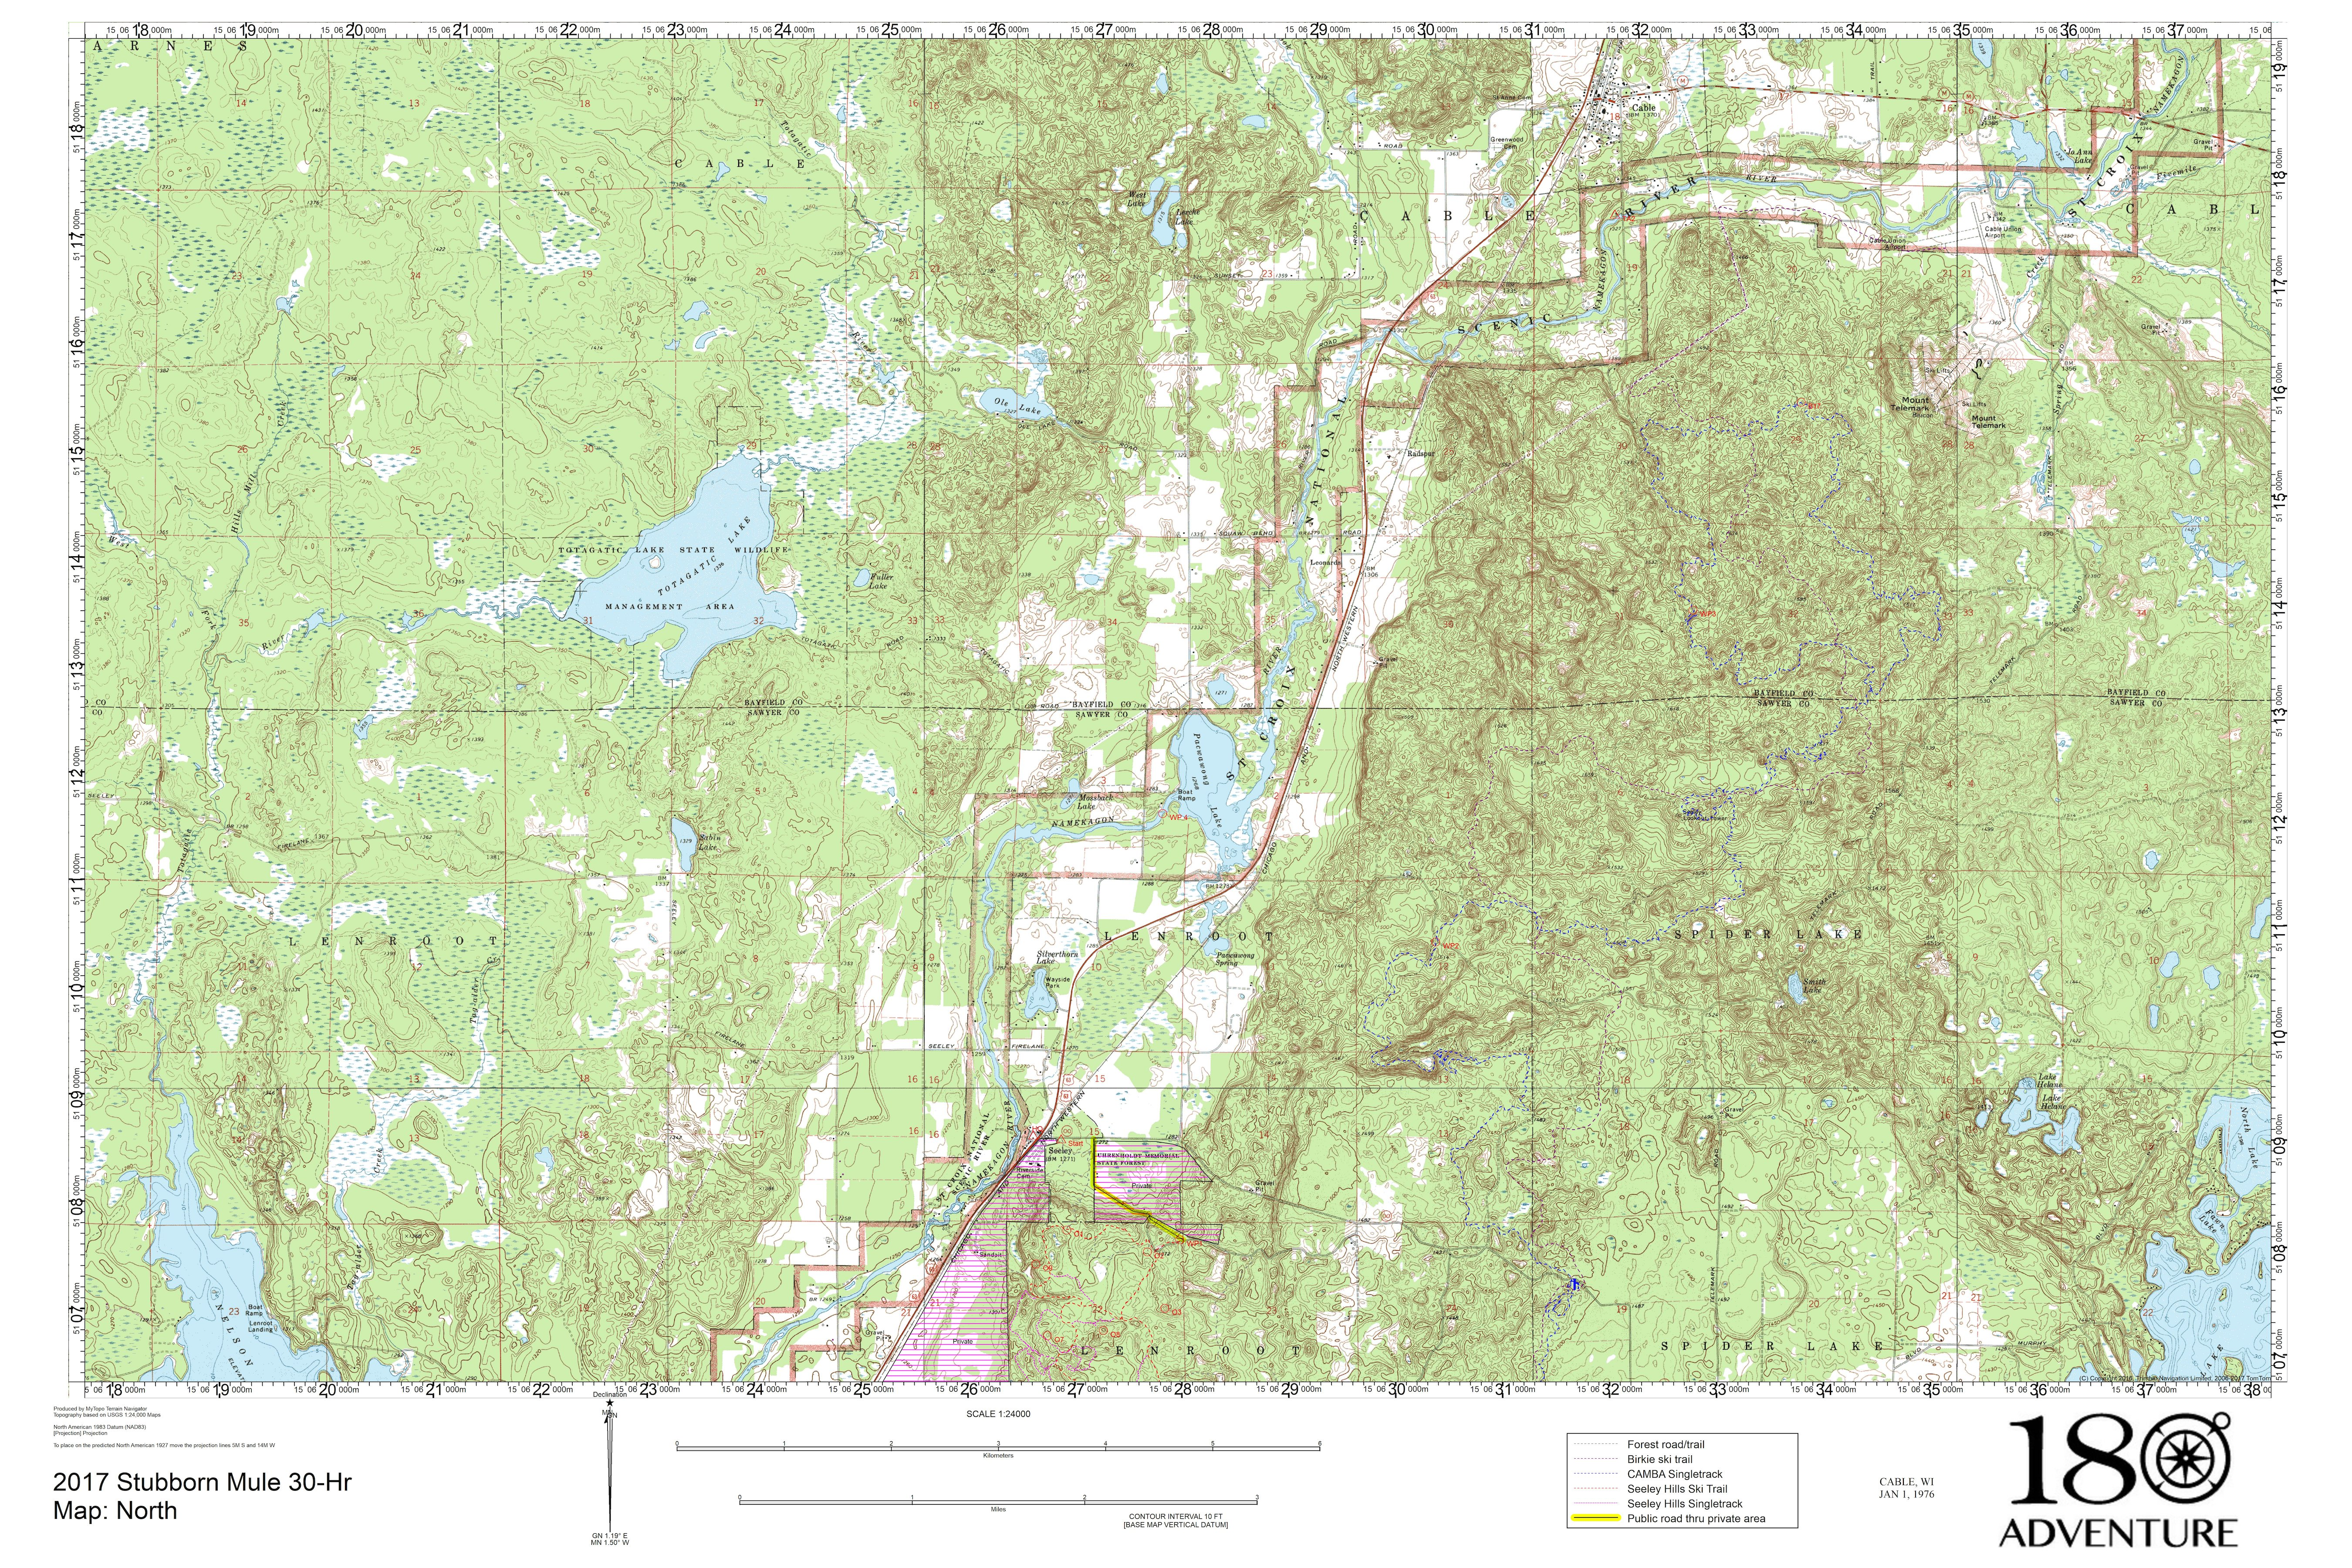 Sample Race Instructions and Maps – 180 Adventure